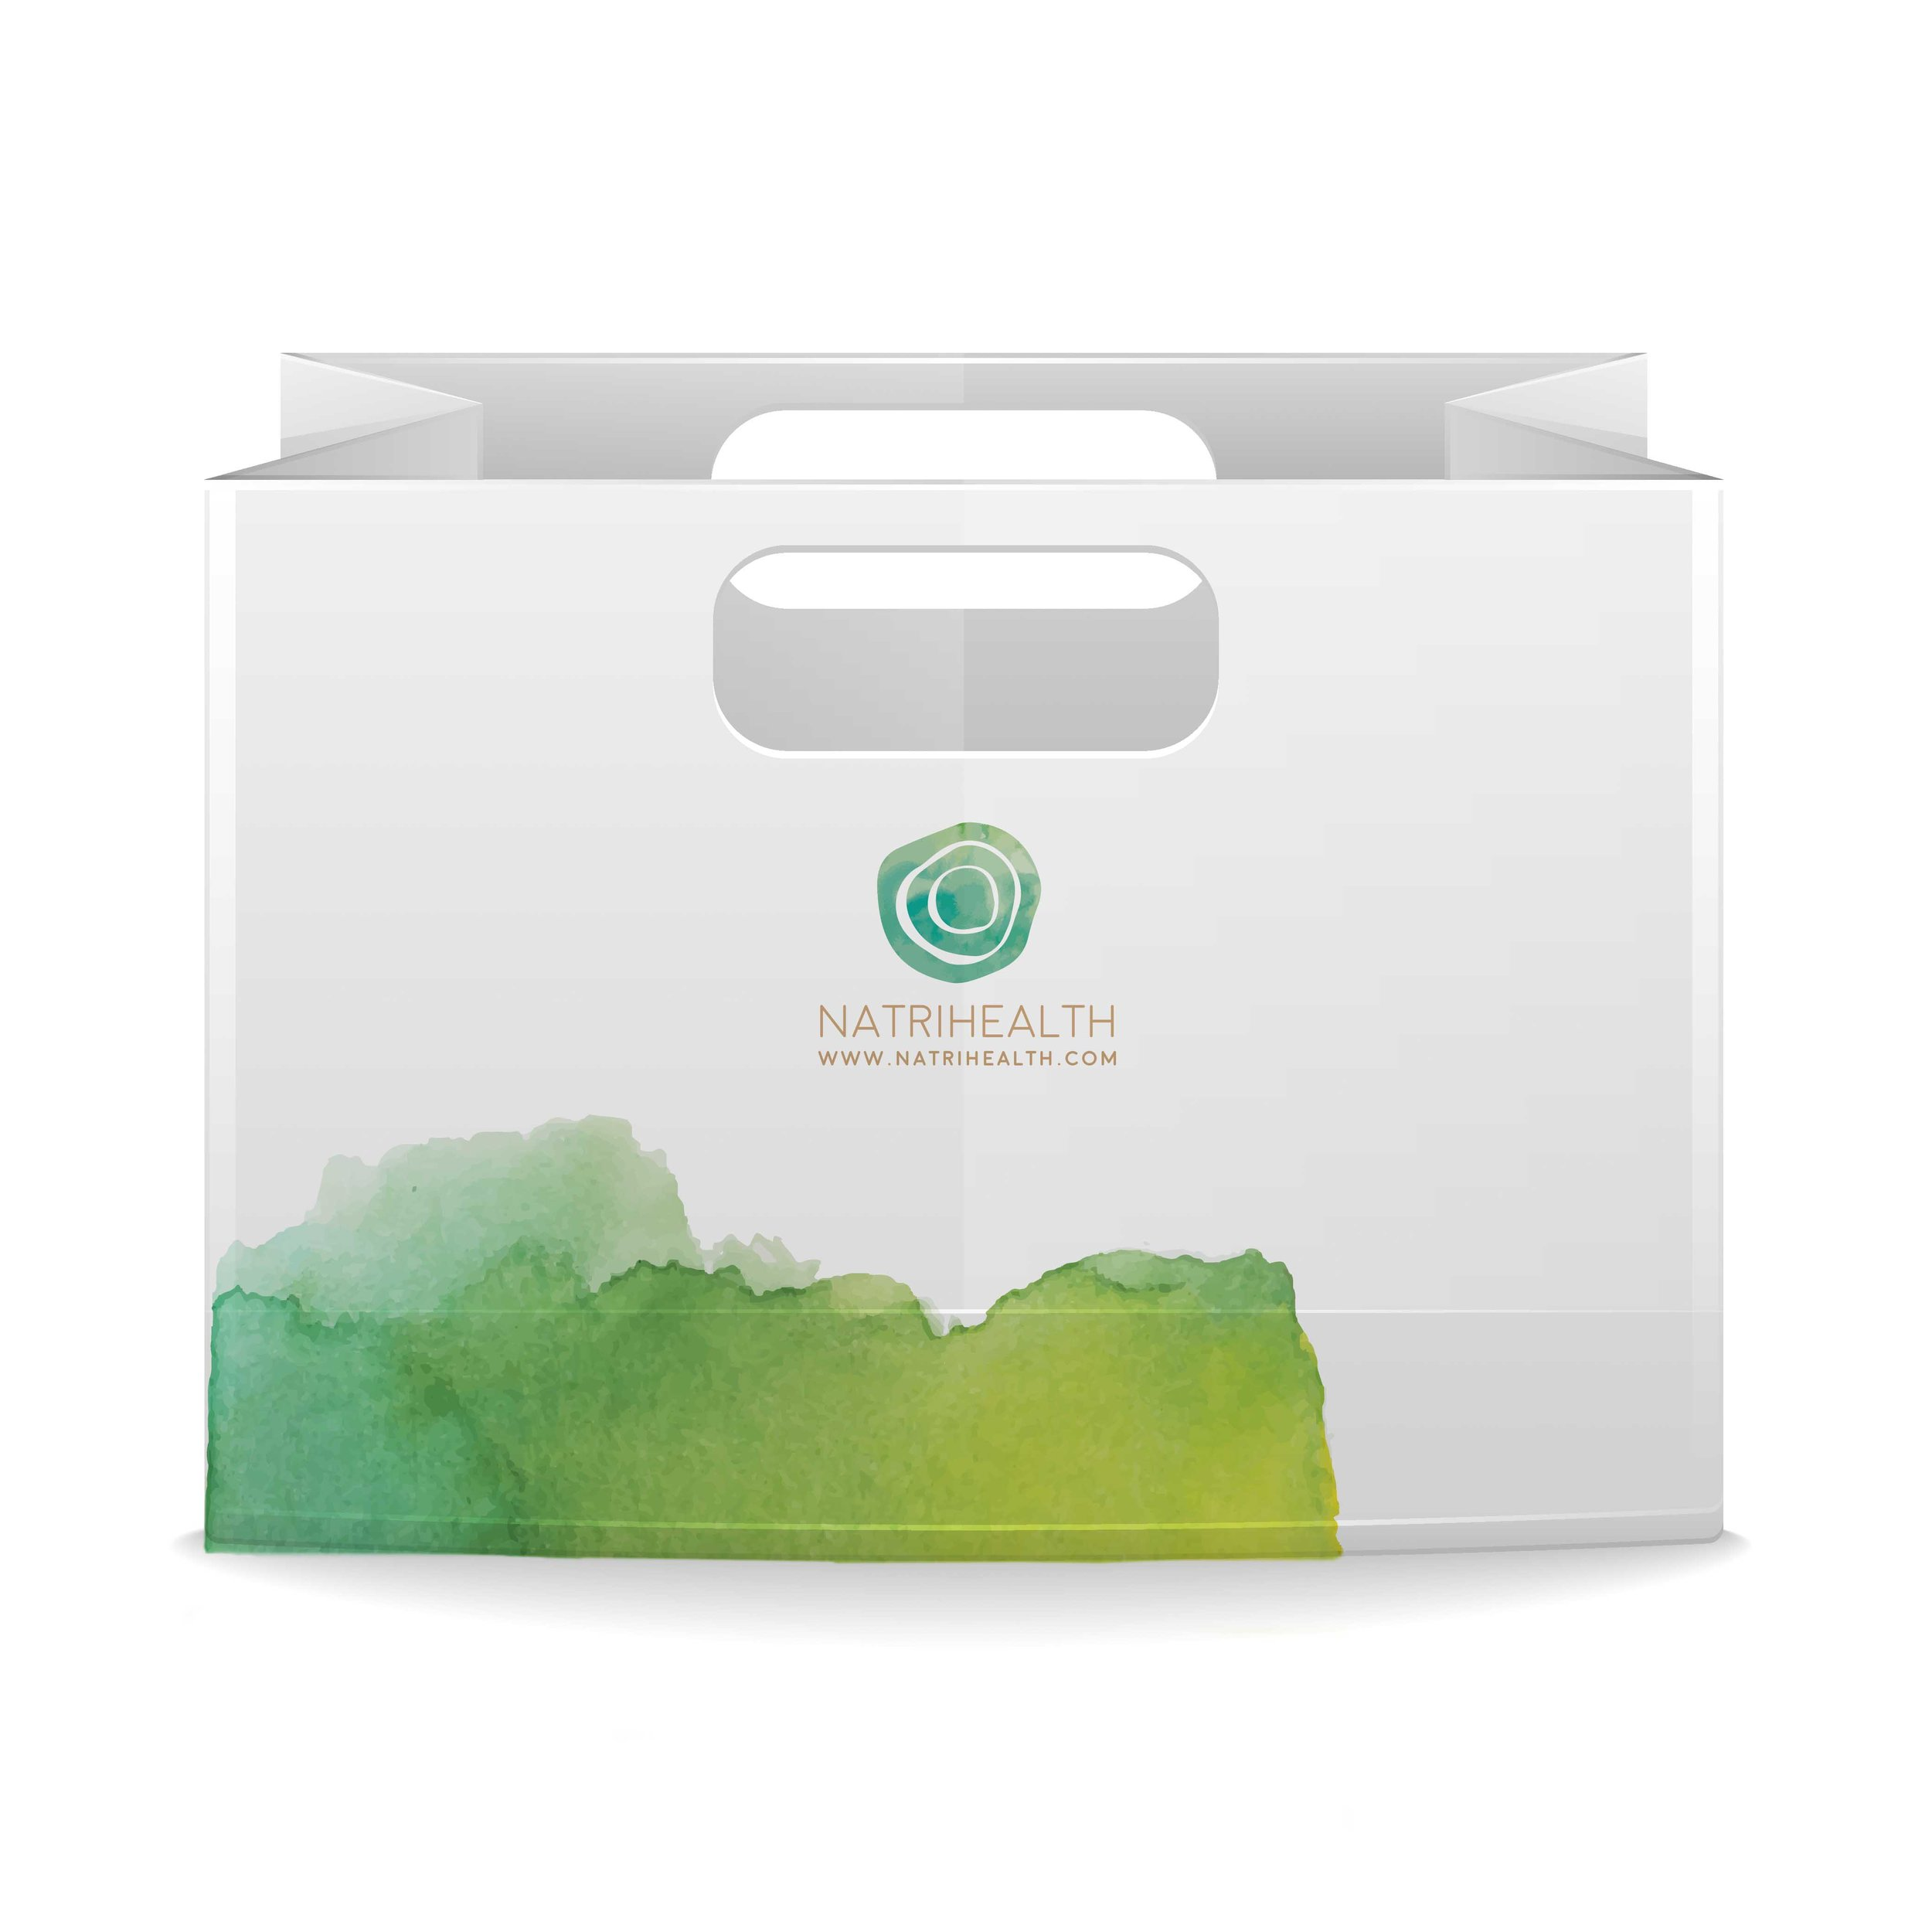 Natrihealth_Fabric_Bag_White_V2.jpg